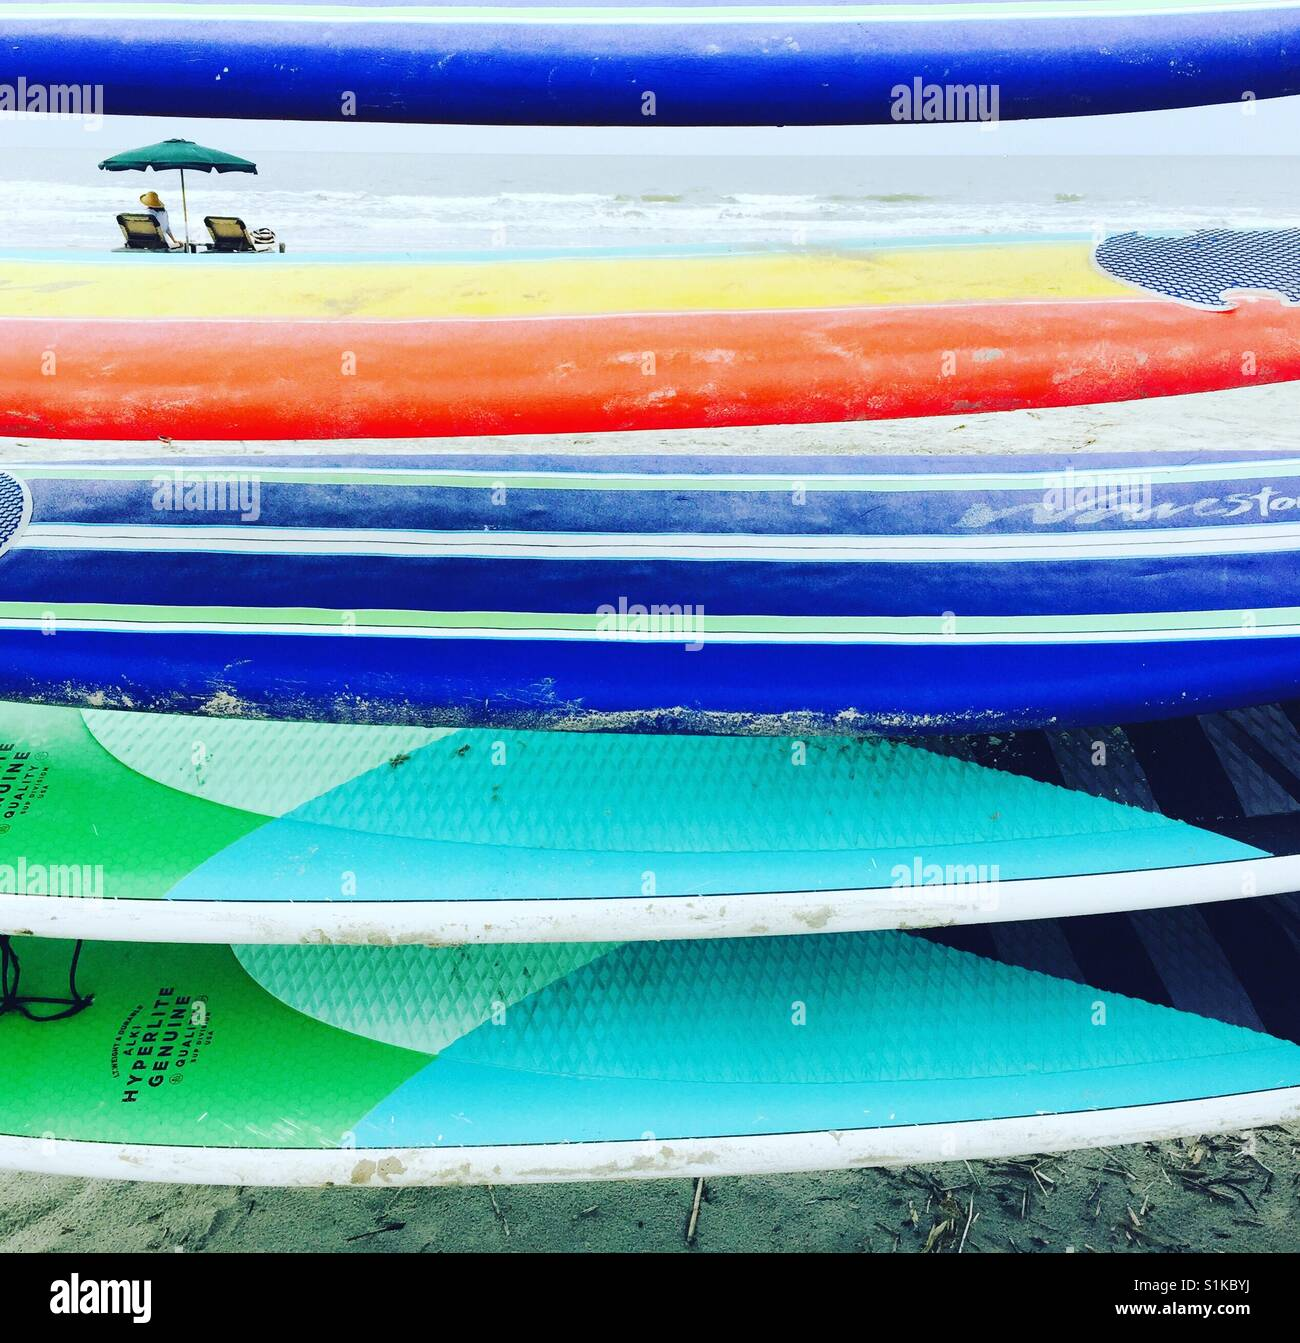 A stack of colorful surf boards and paddle boards. - Stock Image